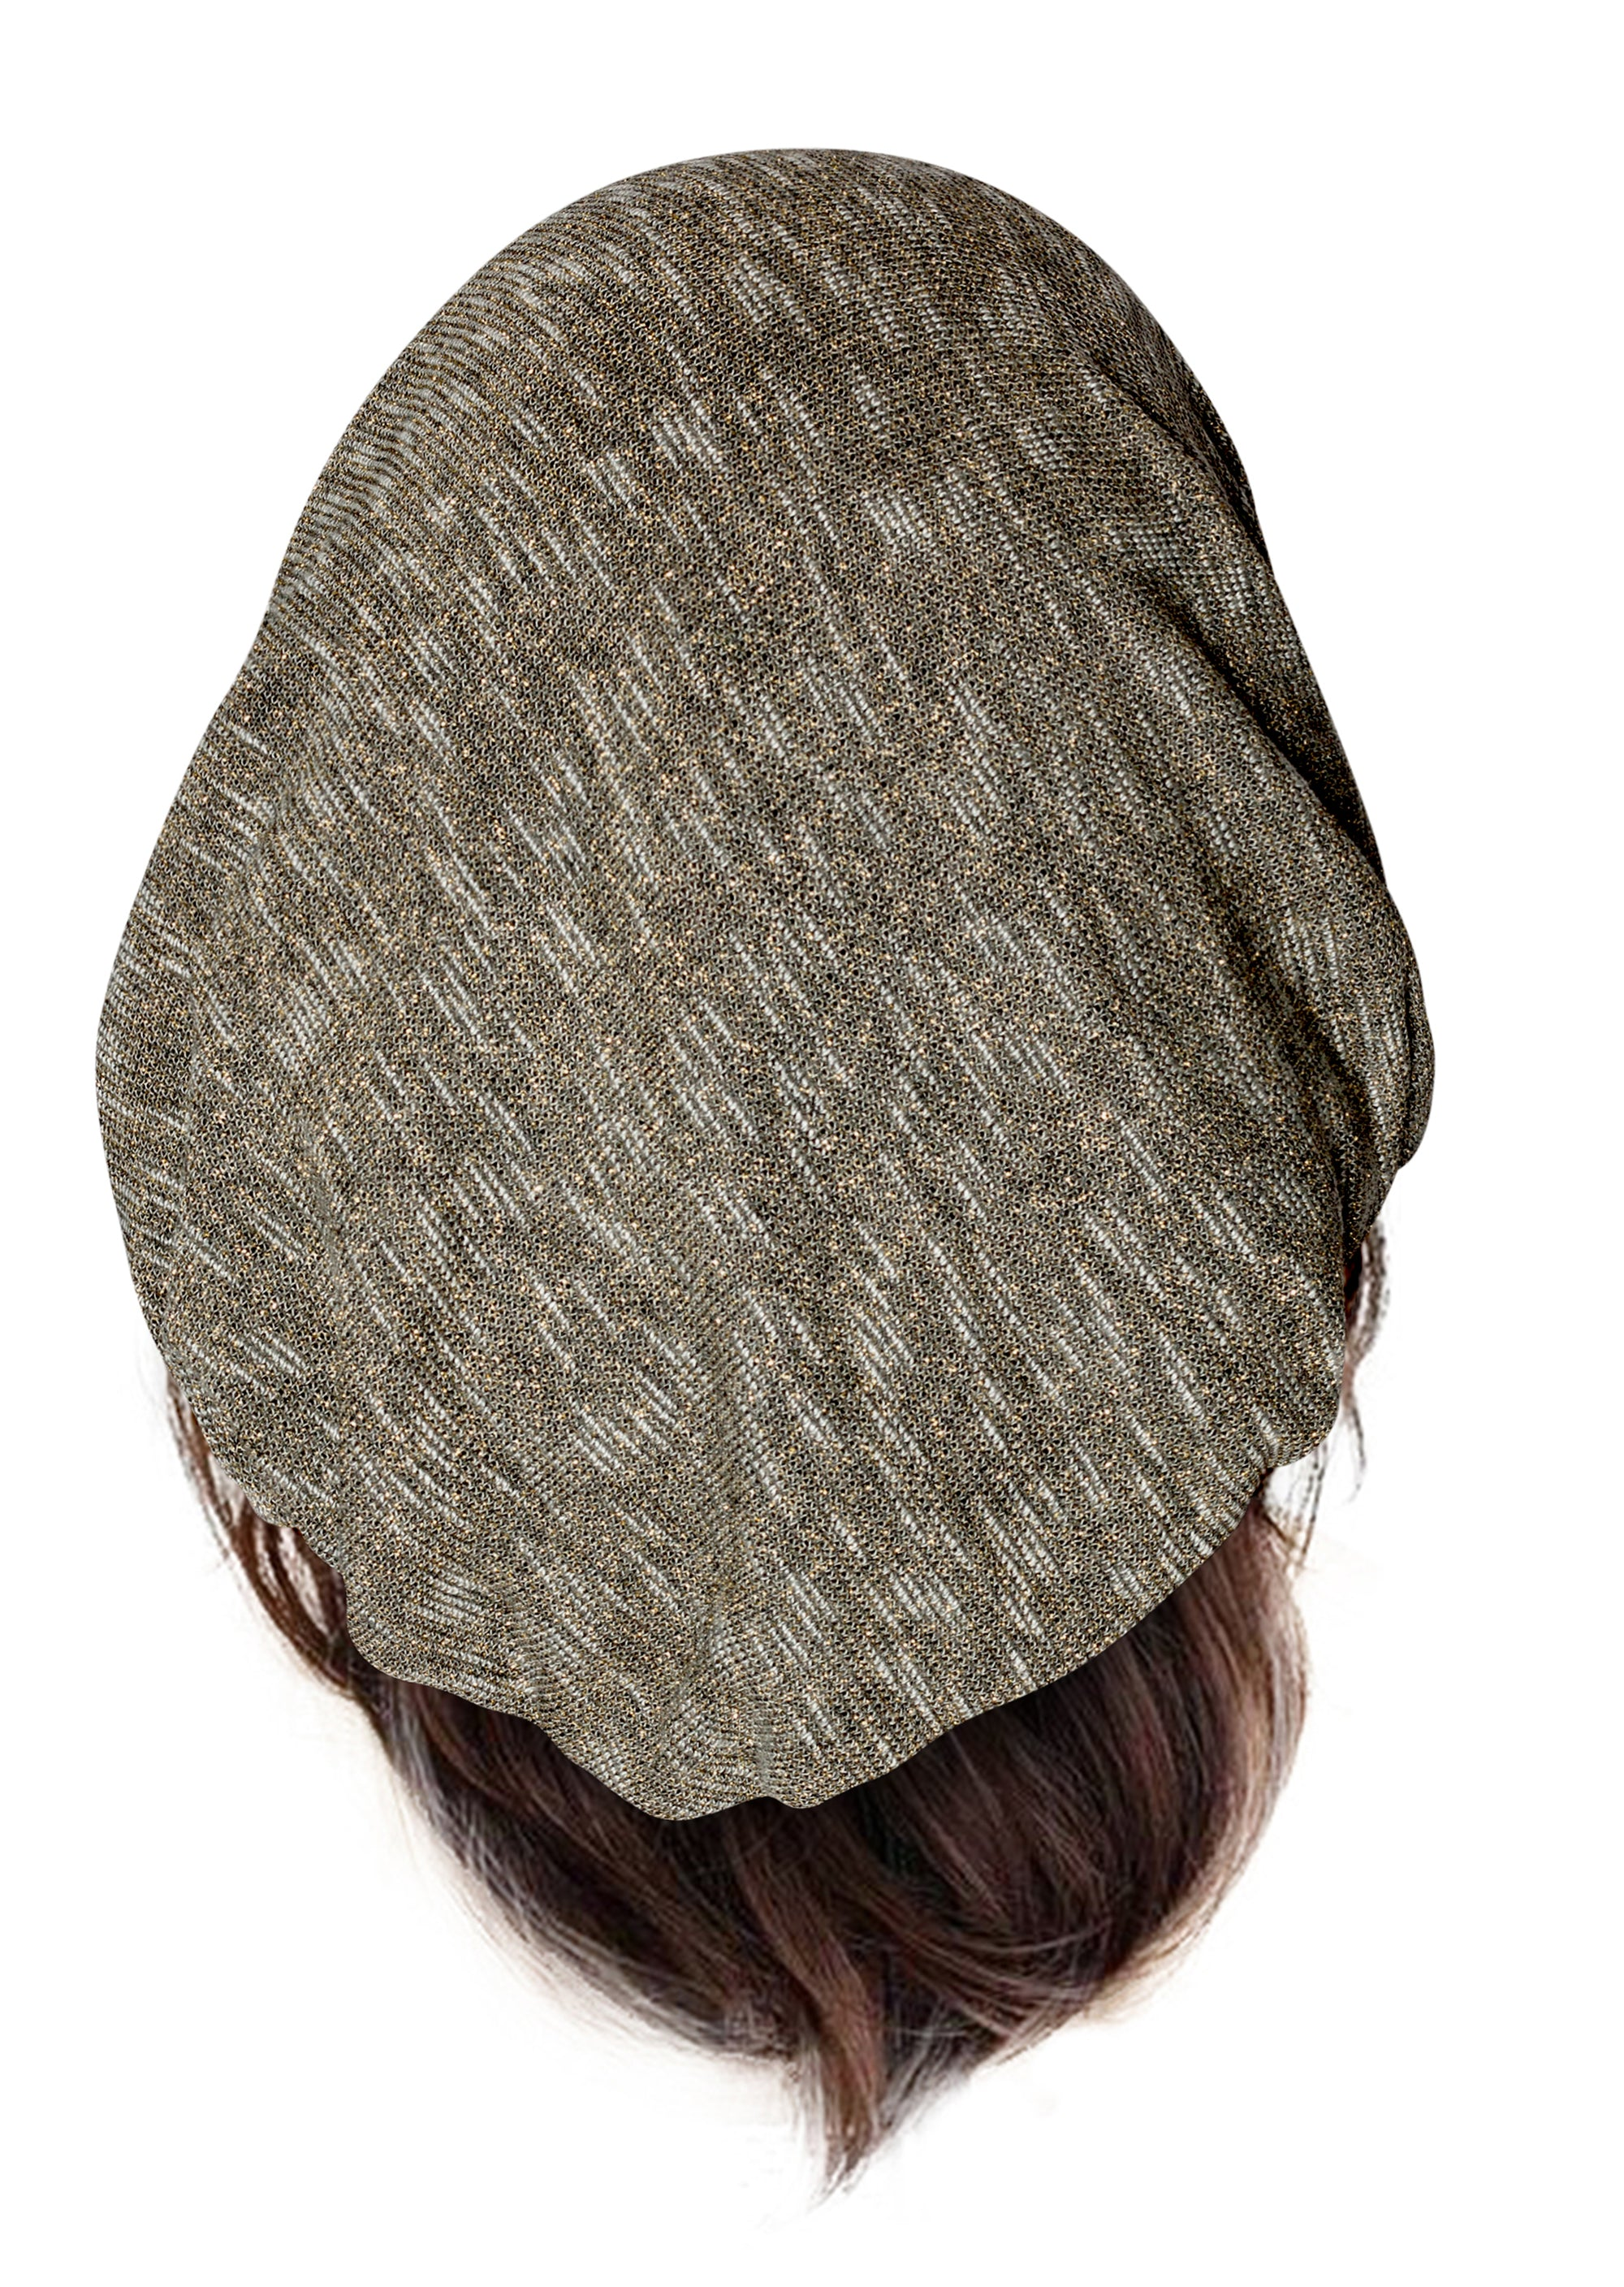 Soft long pre tied knit headscarf dark gray with gold sparkles